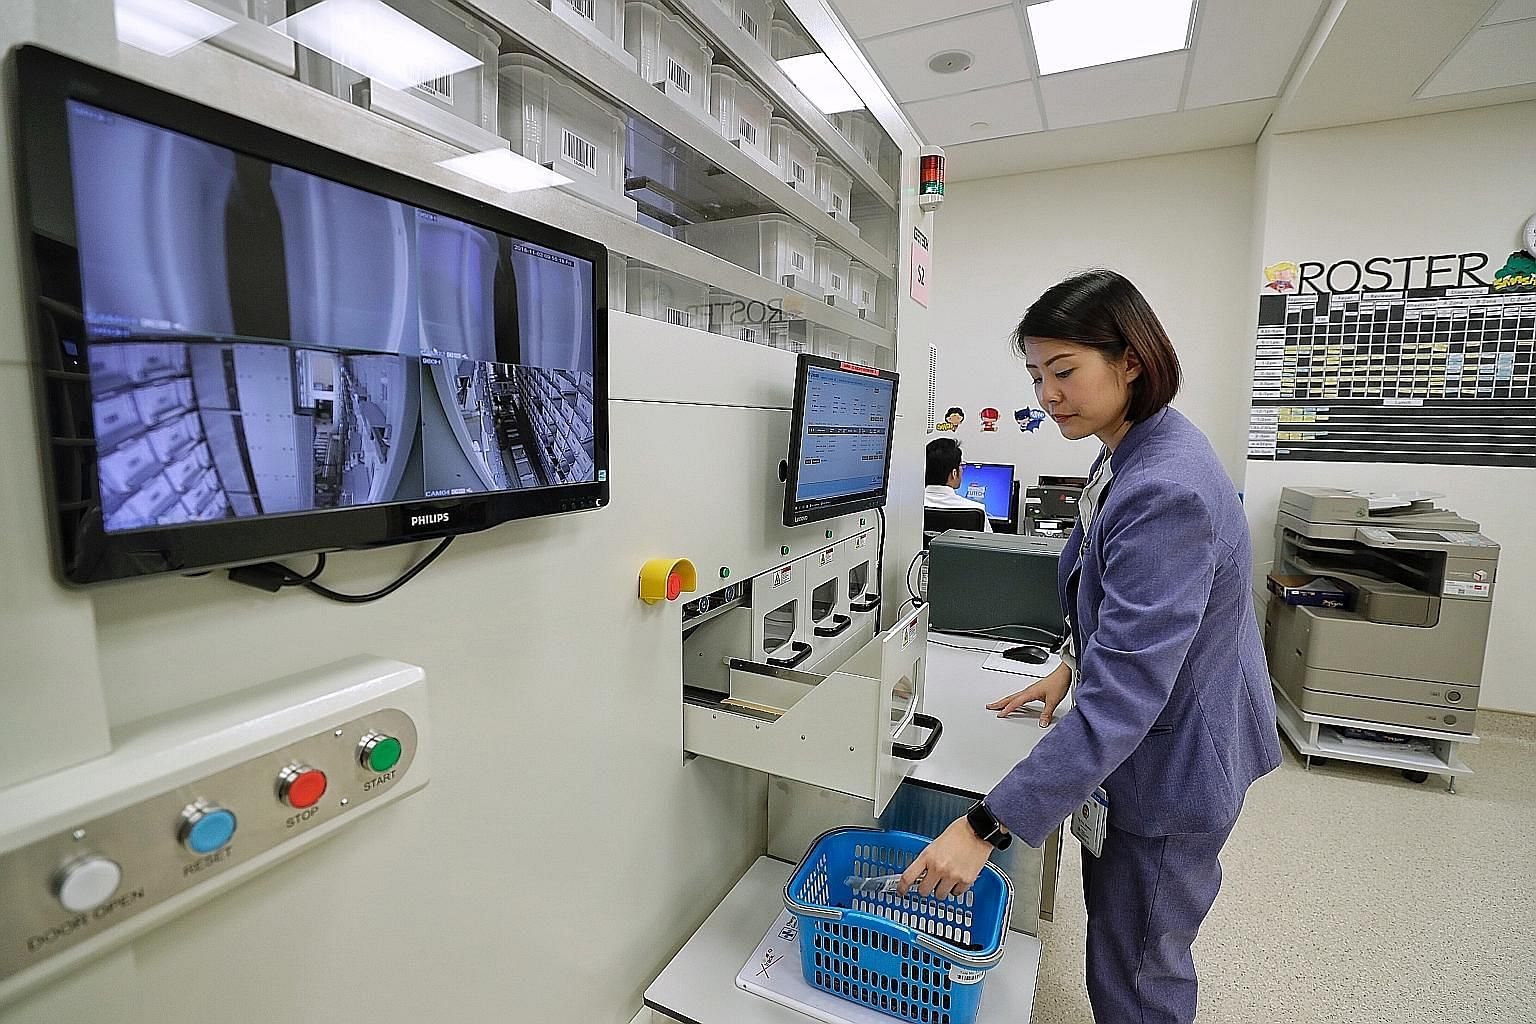 Right: A pharmacist picking up medicine from the outpatient pharmacy automation system (Opas). With Opas, over 50 per cent of same-day consultation patients receive their medication within 10 minutes, and that is twice as many patients as before. Lef